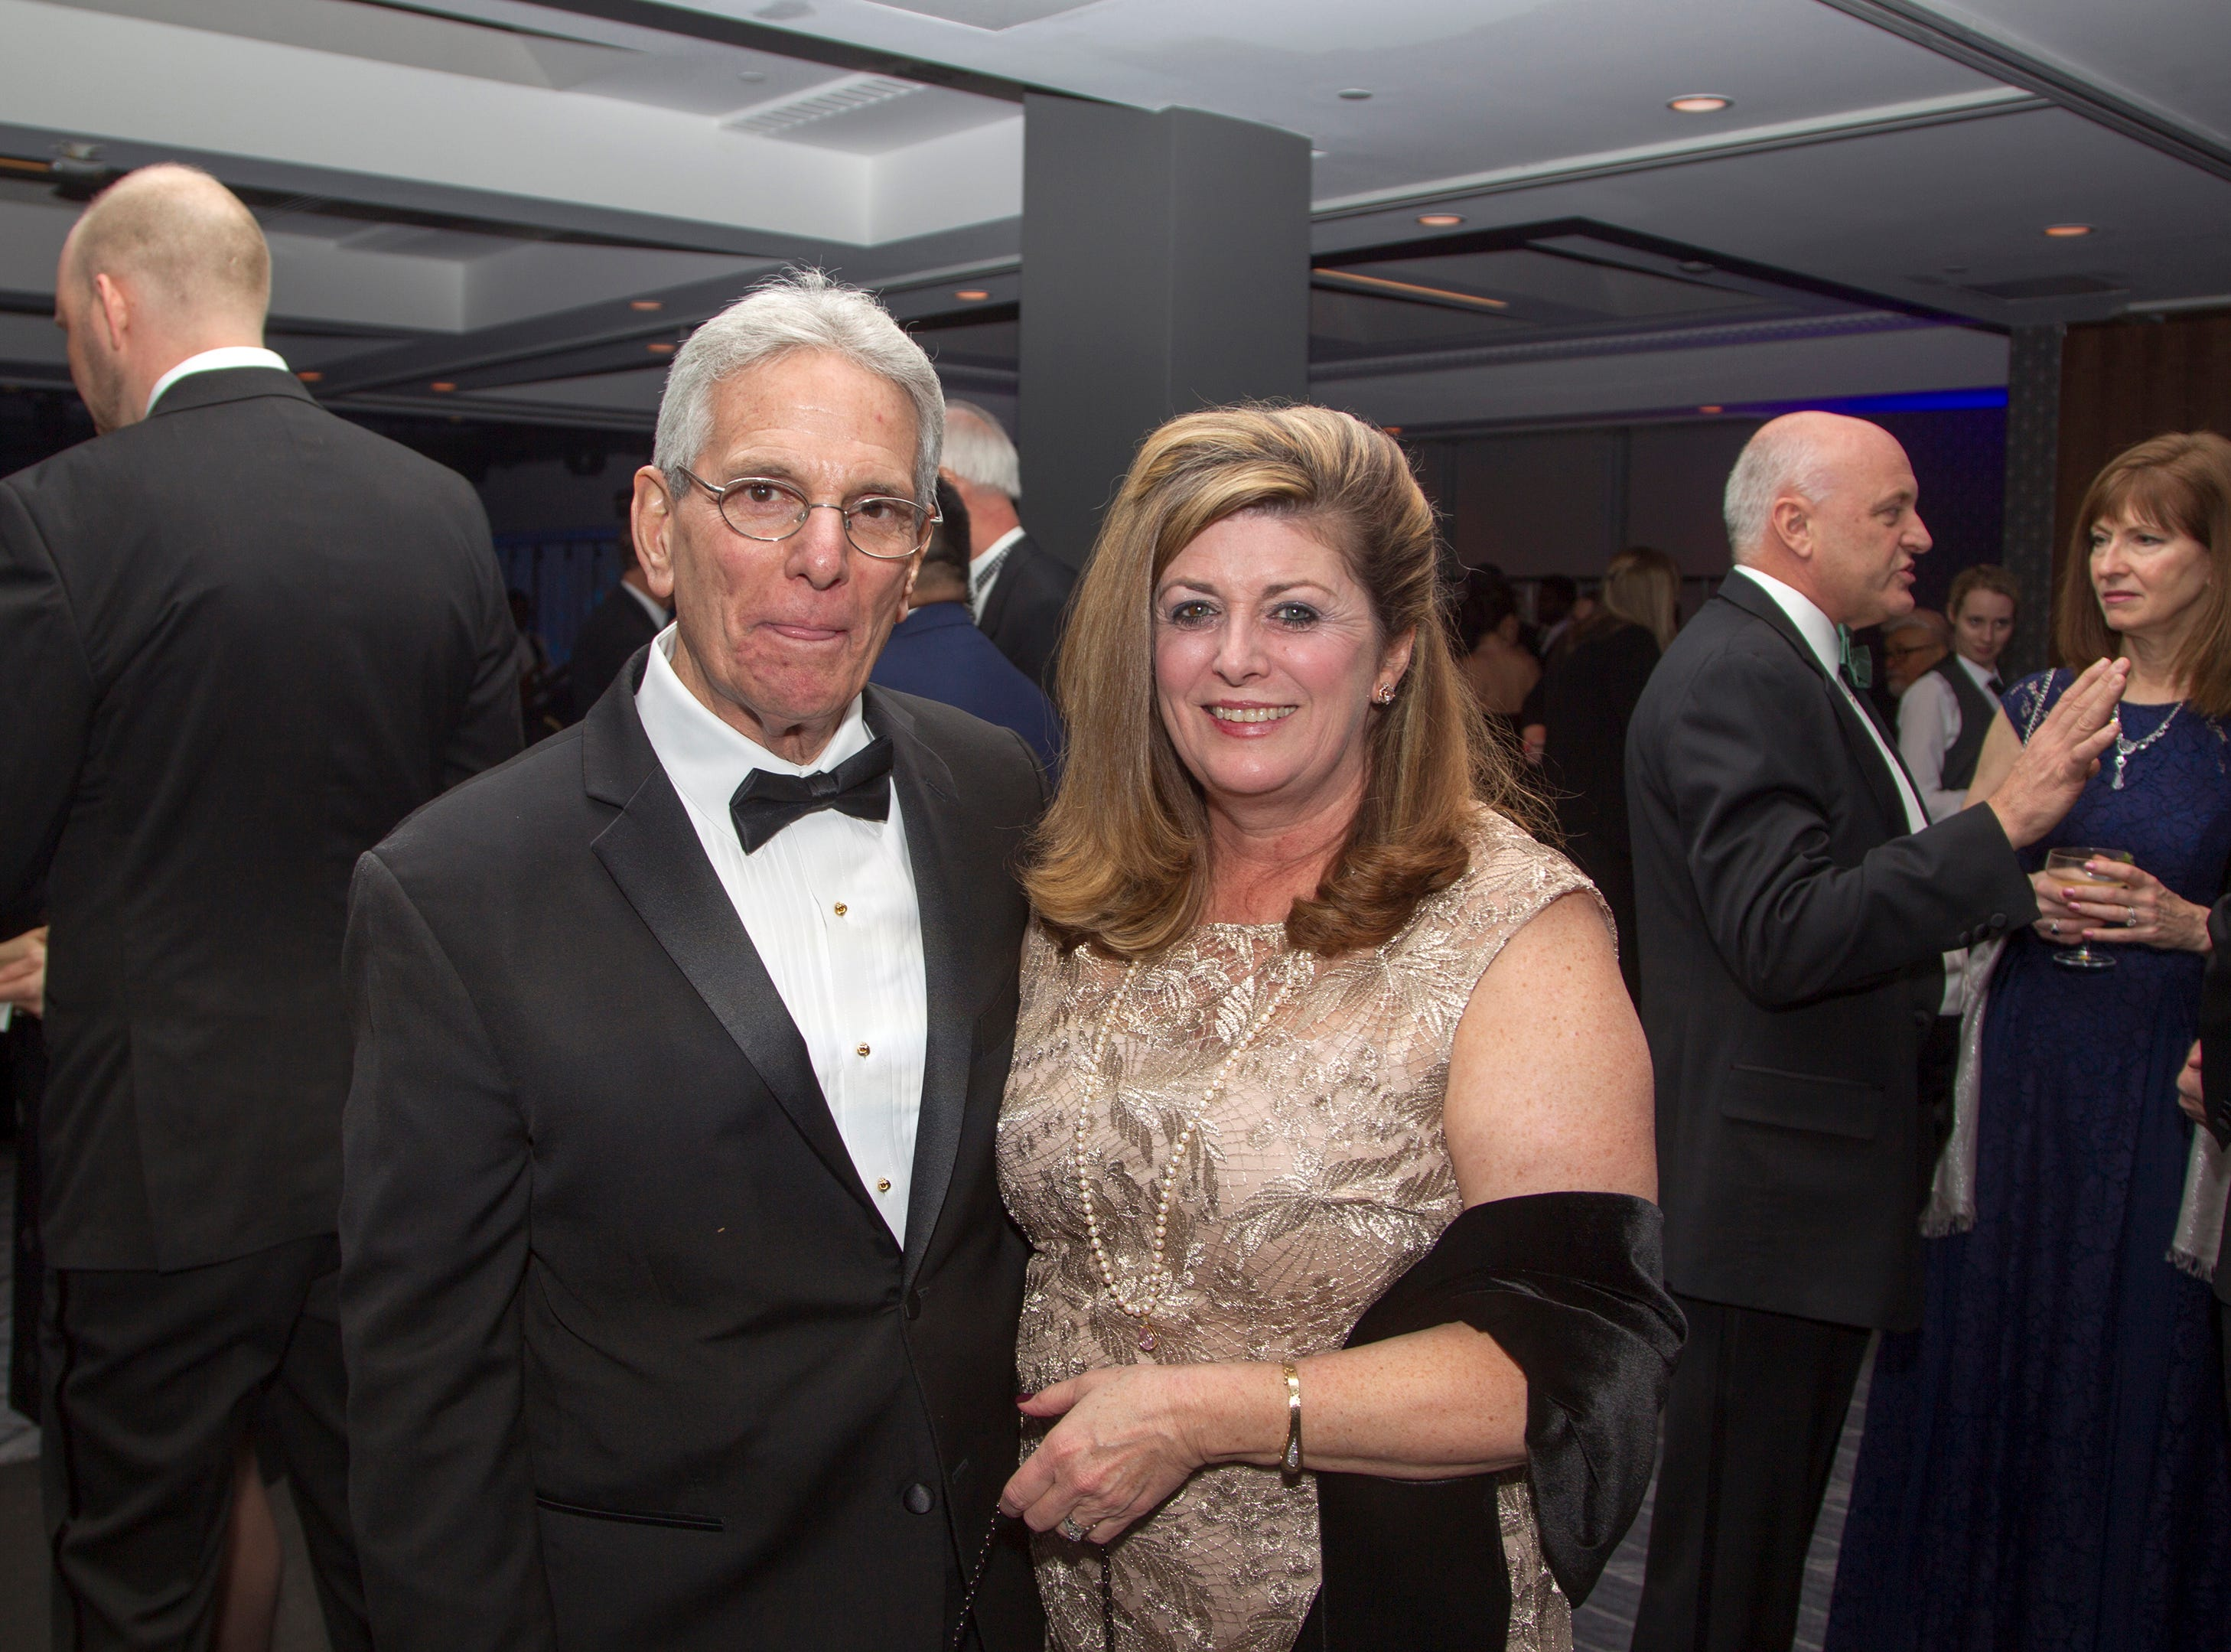 Dr. Charlie Vialotti, Diane Maron. Holy Name Medical Center held its 2018 Founders Ball in NYC at Ziegfeld Ballroom. 11/17/2018